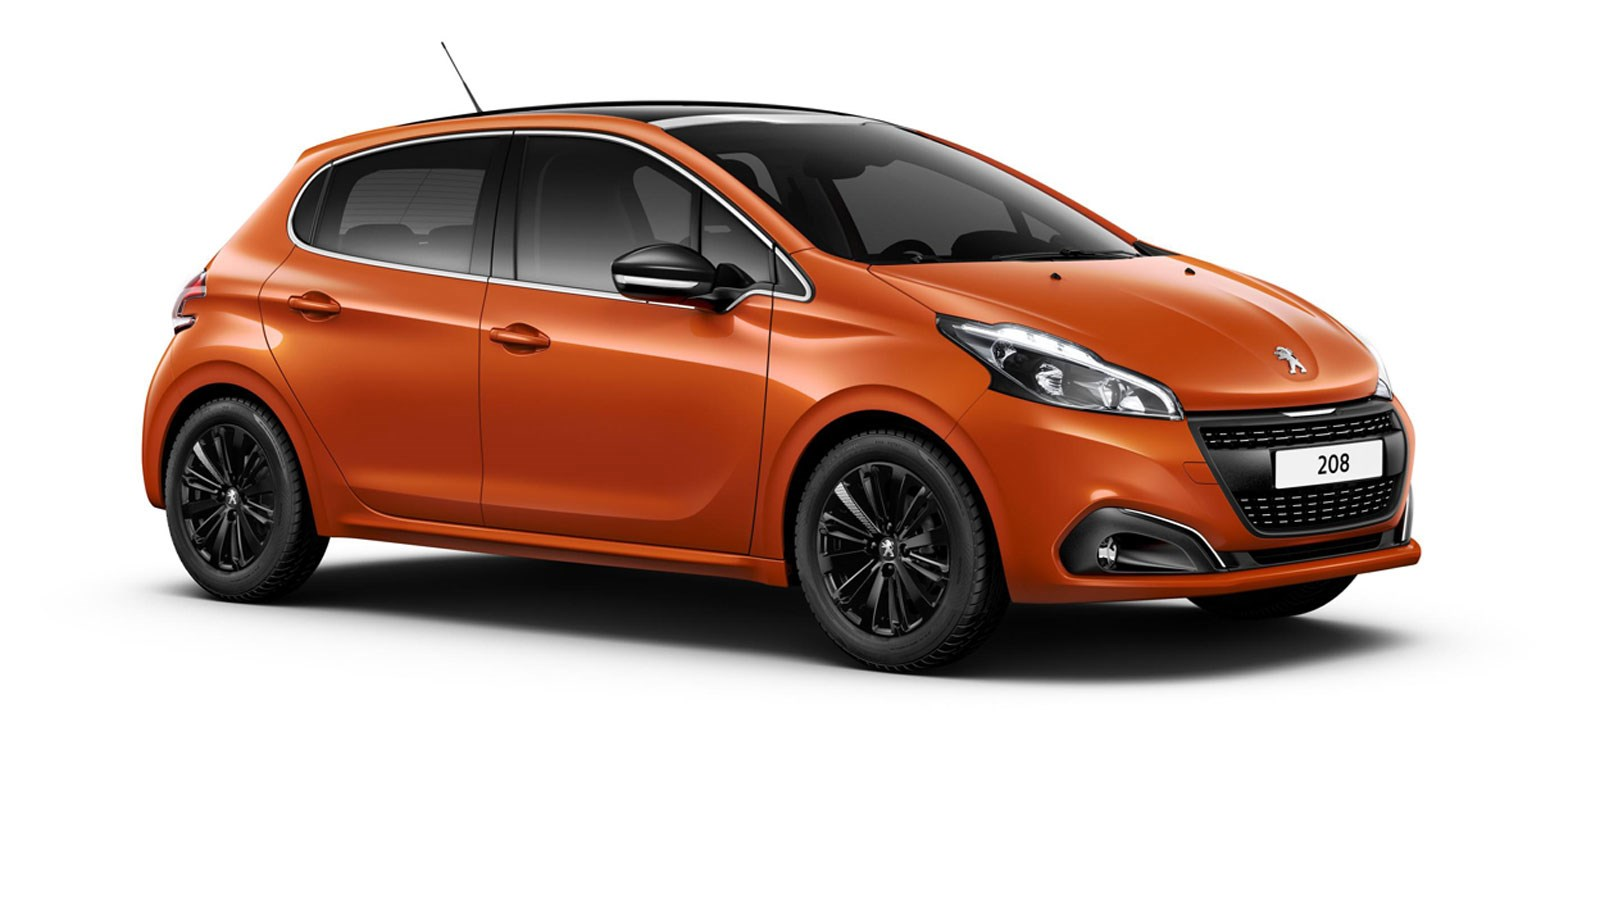 New headlights, new bumpers - typical facelift fare for the 2015 Peugeot 208  ...